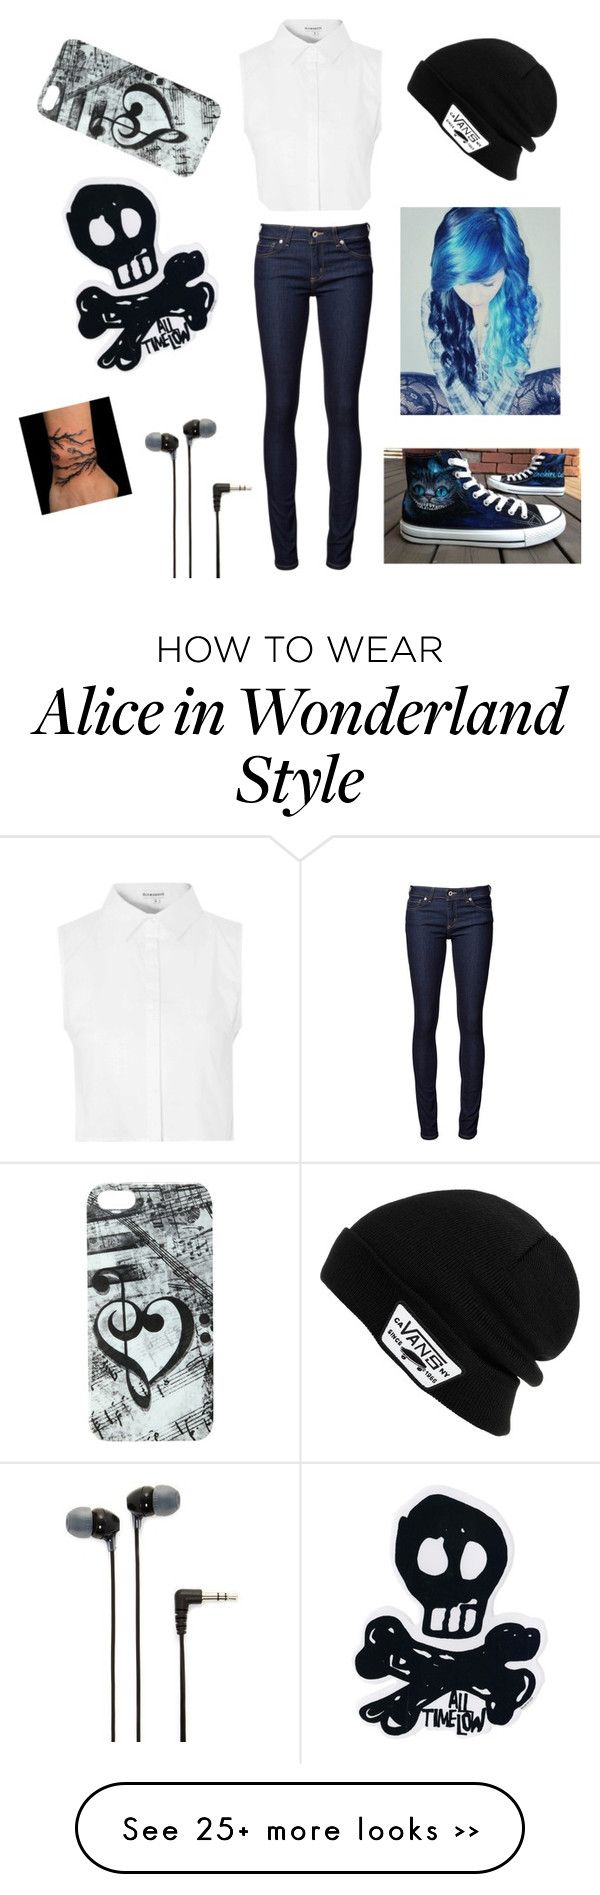 """Outfit 39"" by alphaalex on Polyvore featuring Naked & Famous, Vans, Glamorous, Converse and Sony"